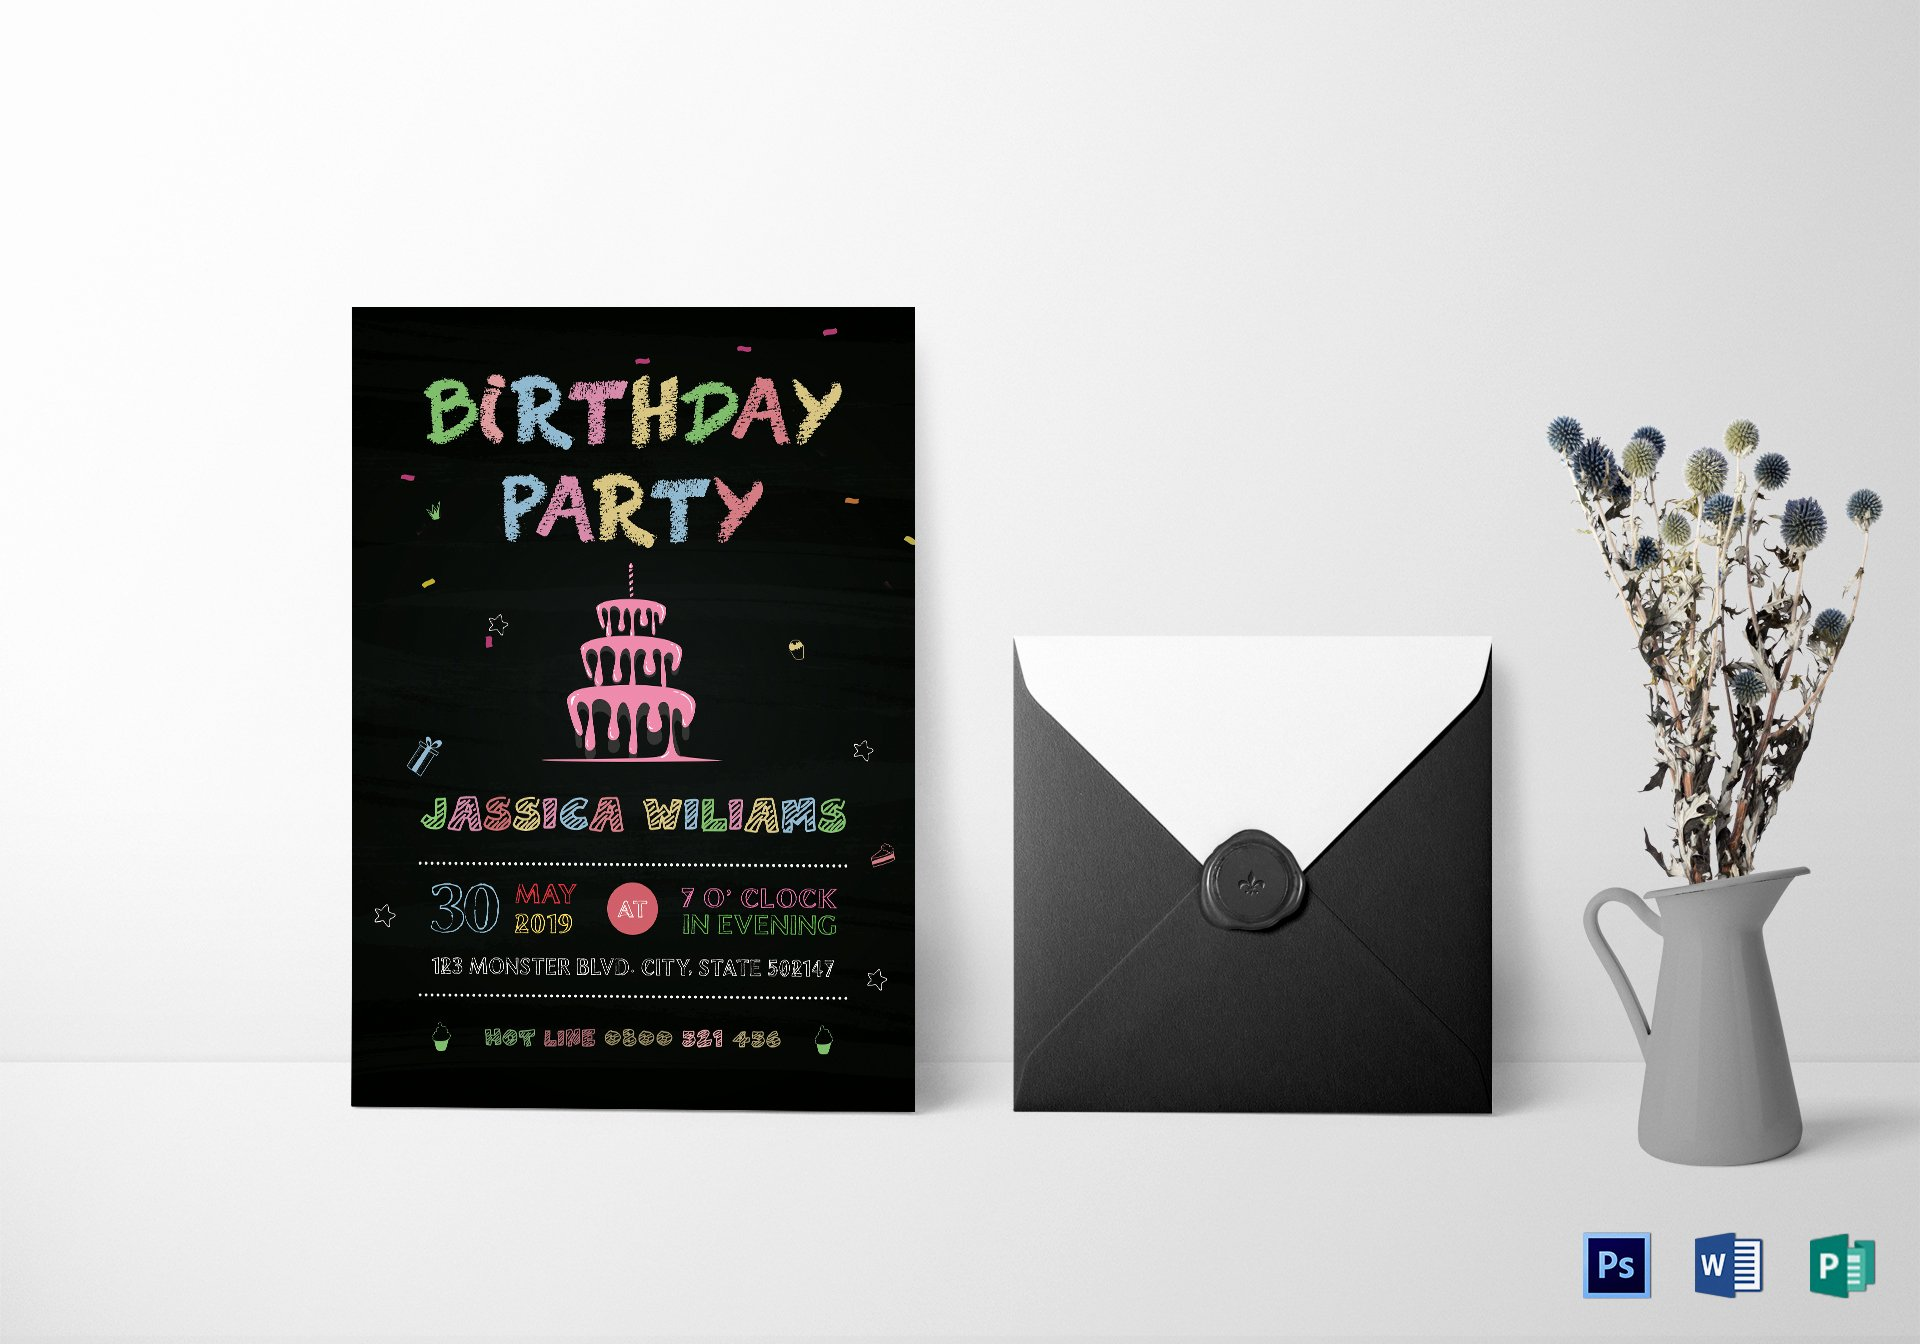 Free Birthday Chalkboard Template Inspirational Chalkboard Birthday Party Invitation Design Template In